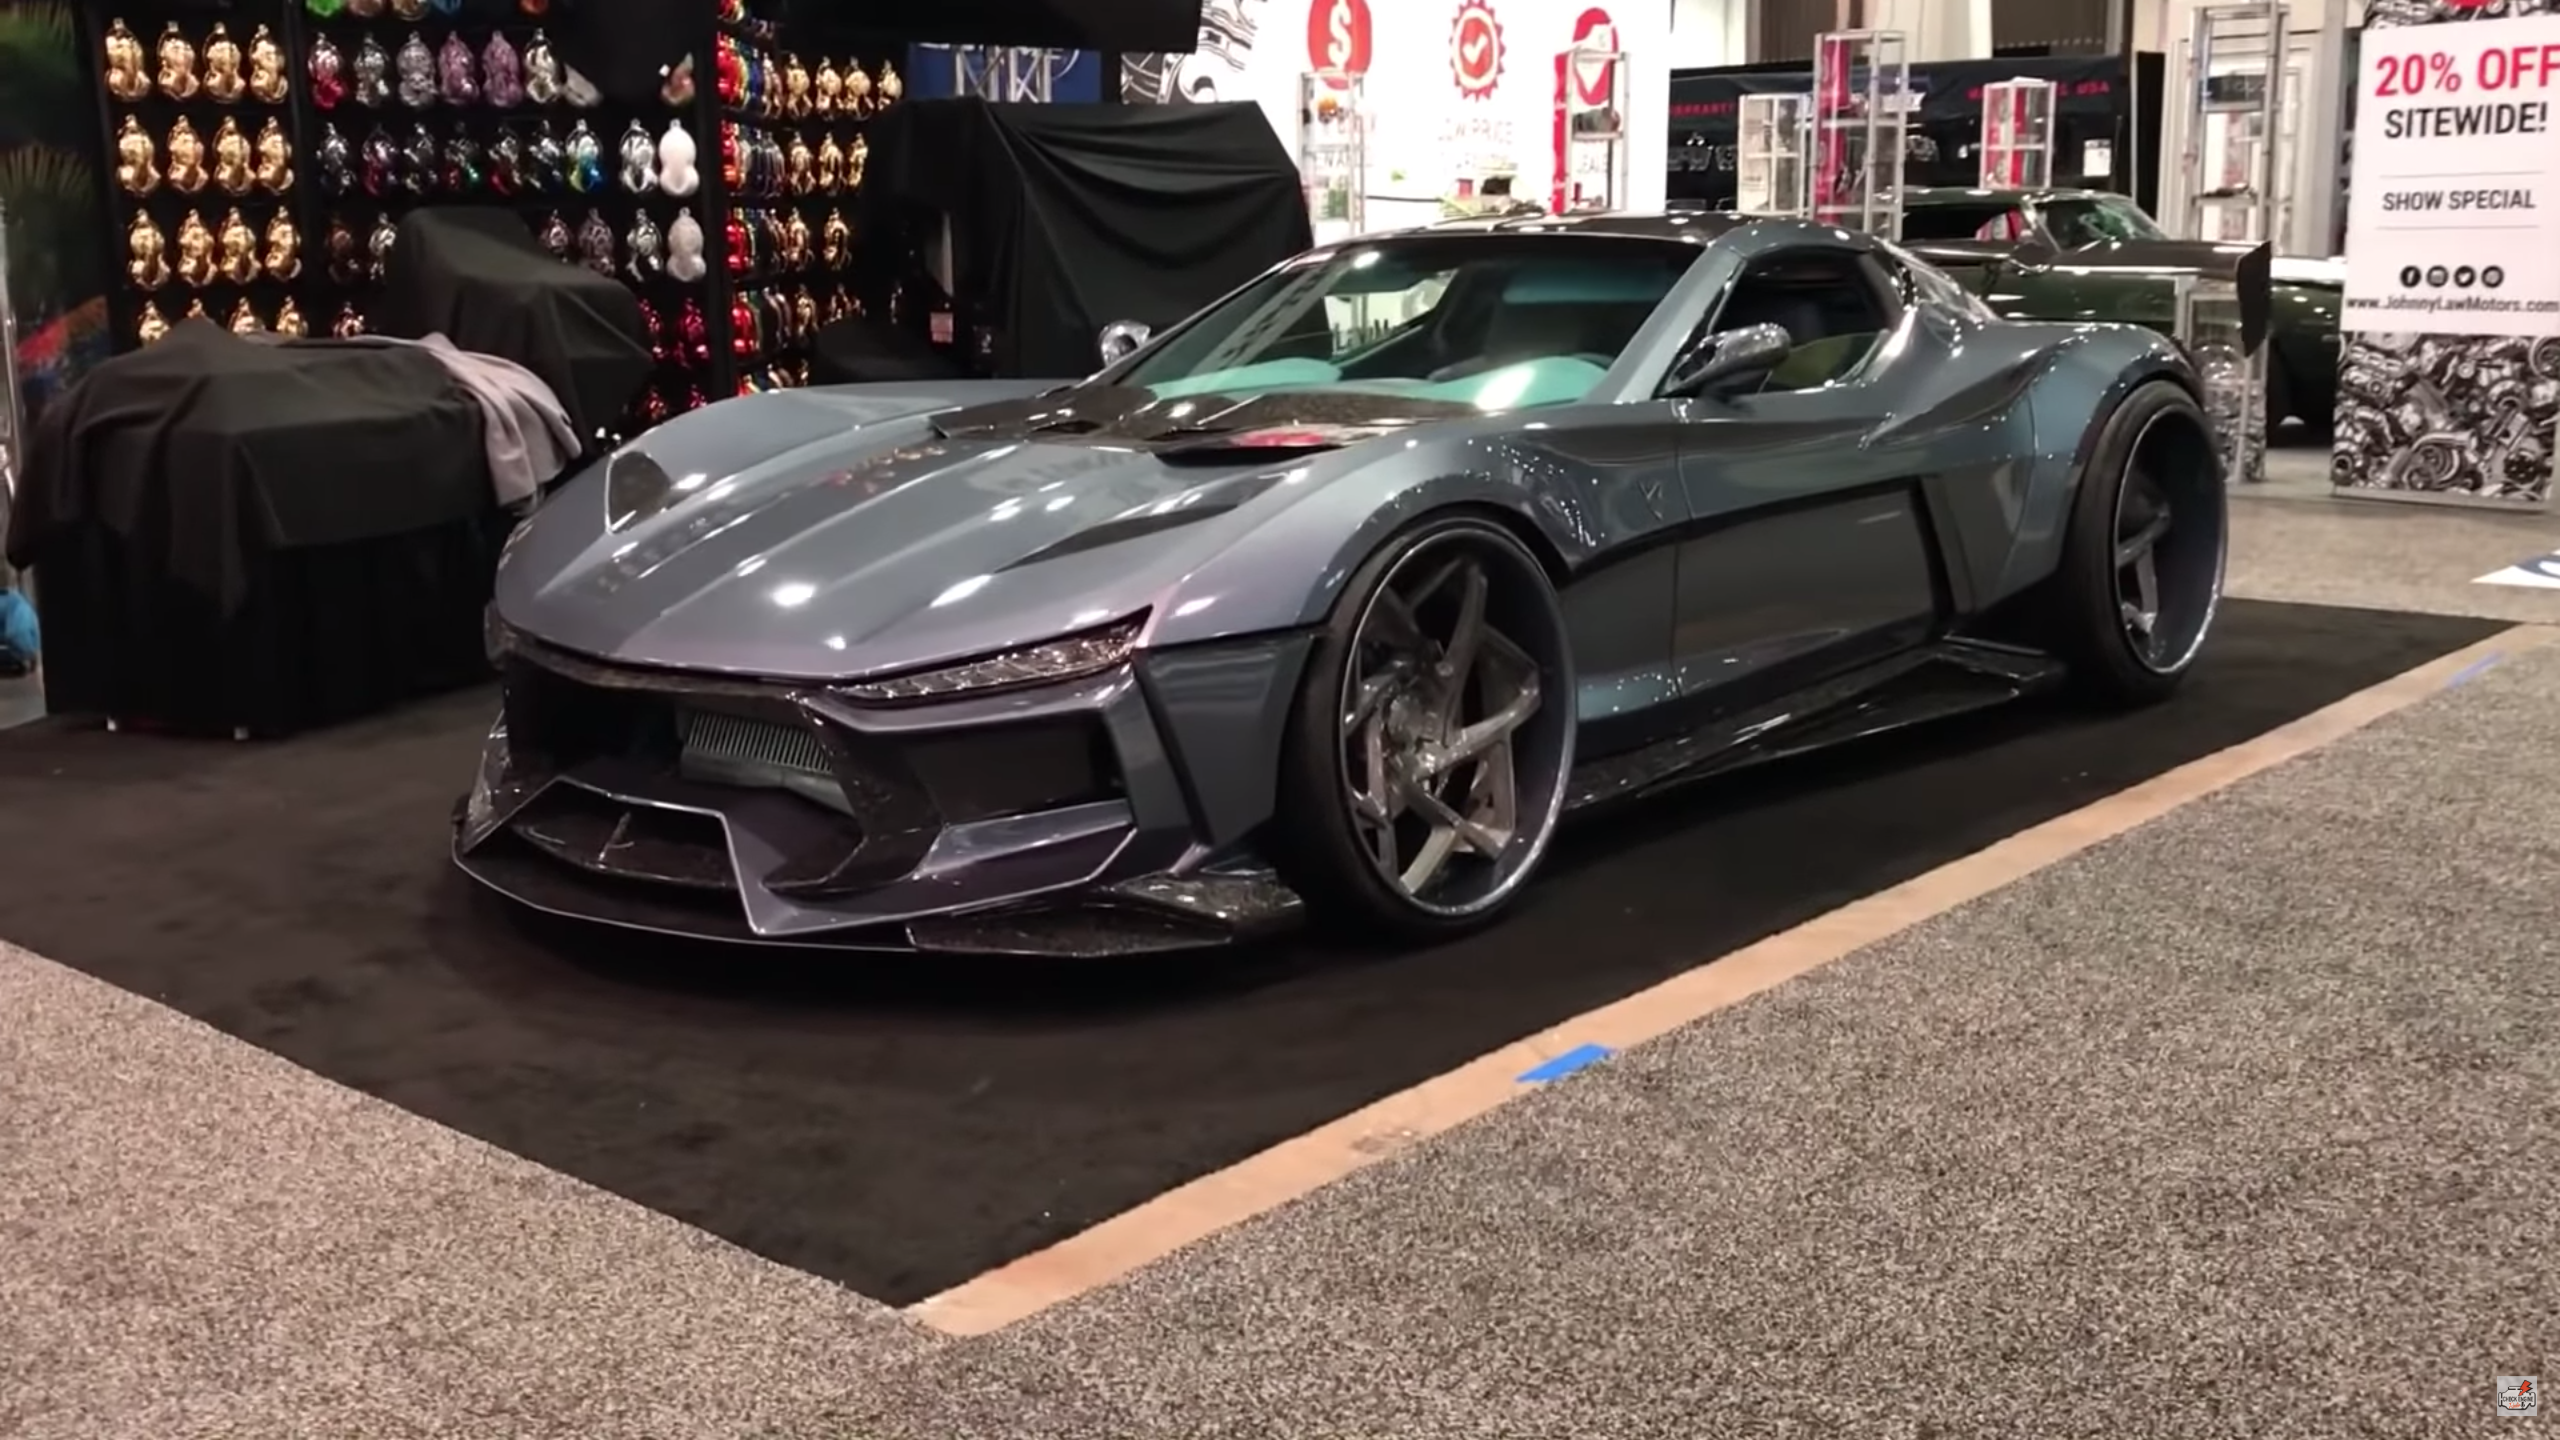 There's Actually a Corvette Under All This Body Kit